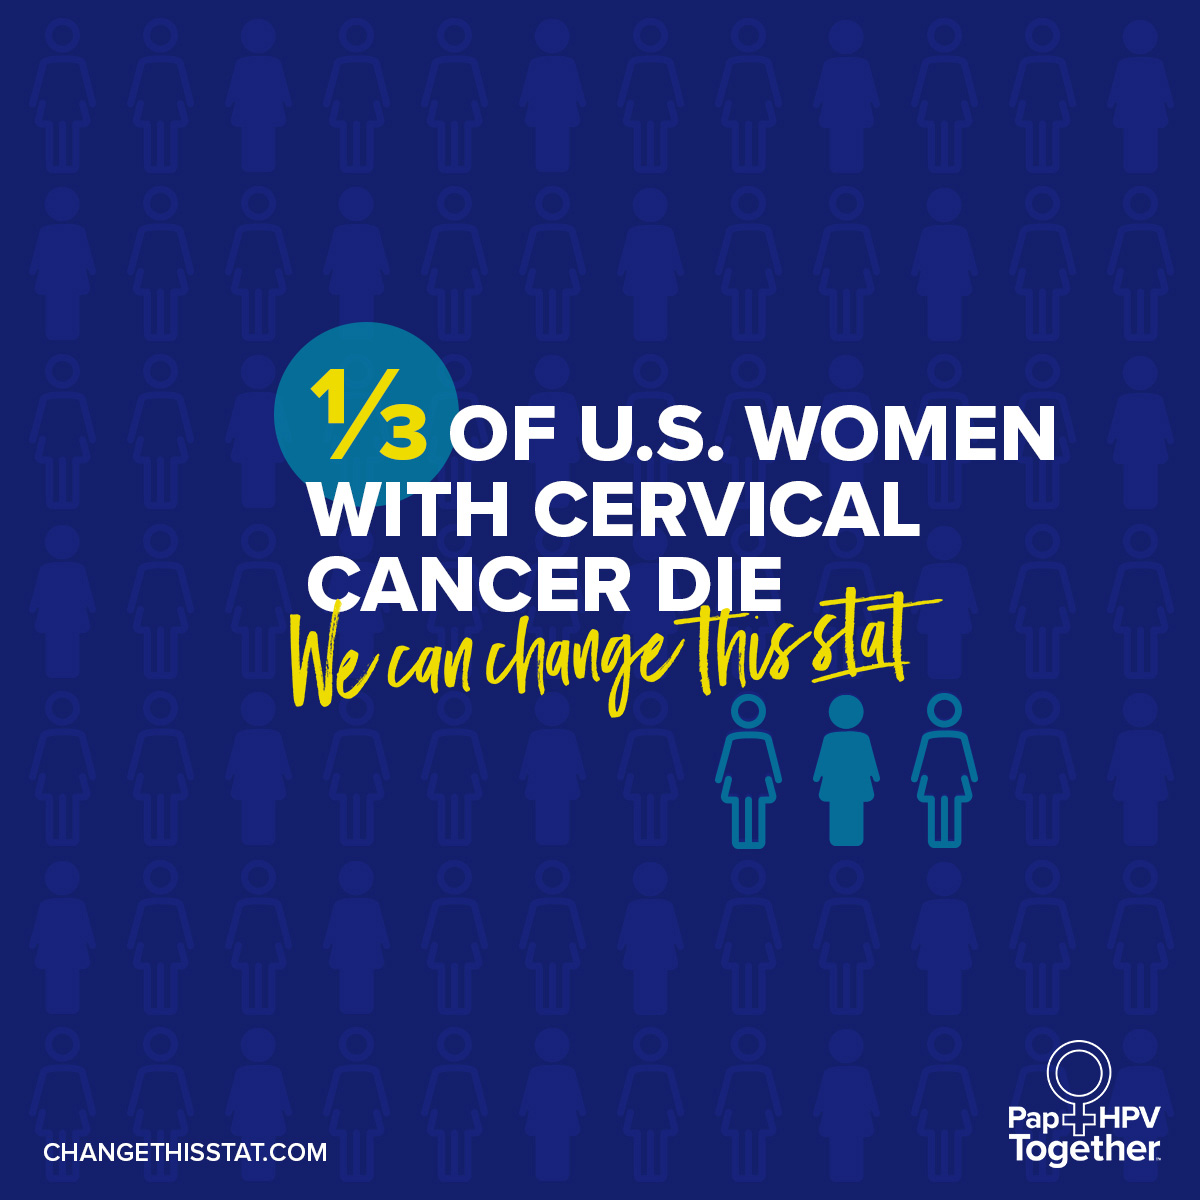 Approximately 8 million U.S. women ages 21 to 65 years old reported they had not been tested for cervical cancer in the last 5 years.